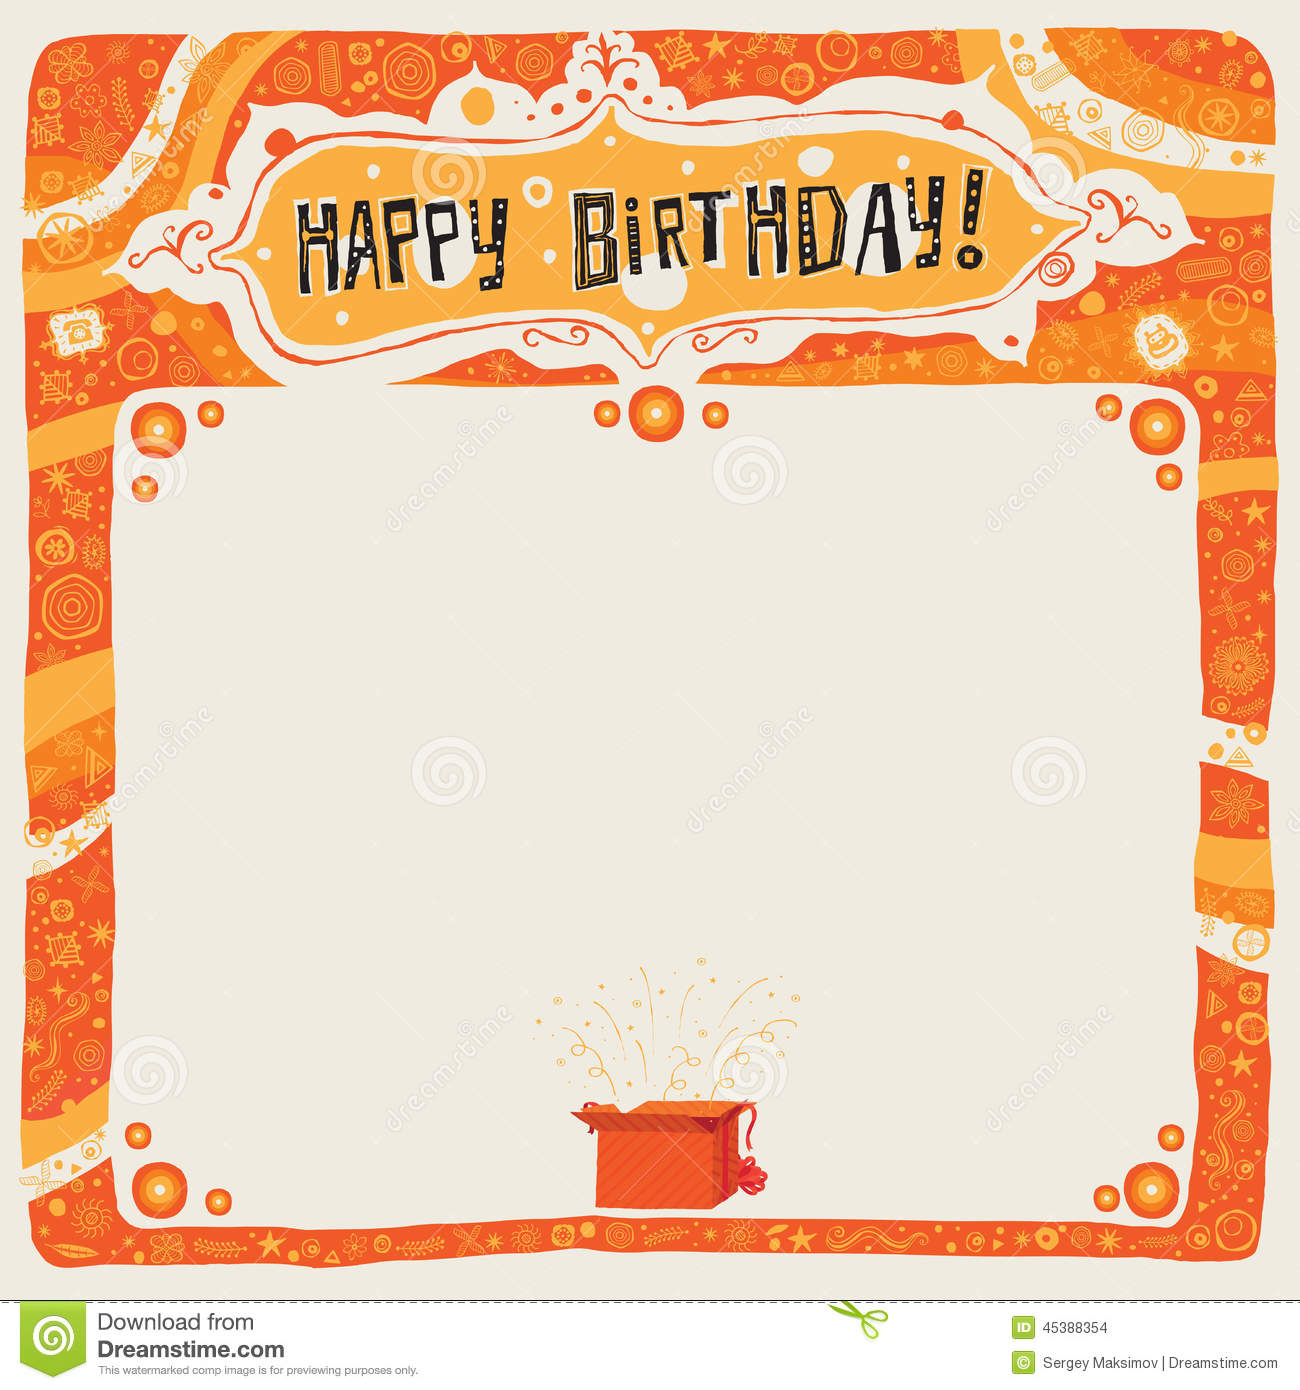 happy b day poster ; happy-birthday-postcard-poster-background-ornament-invitation-vector-illustration-45388354